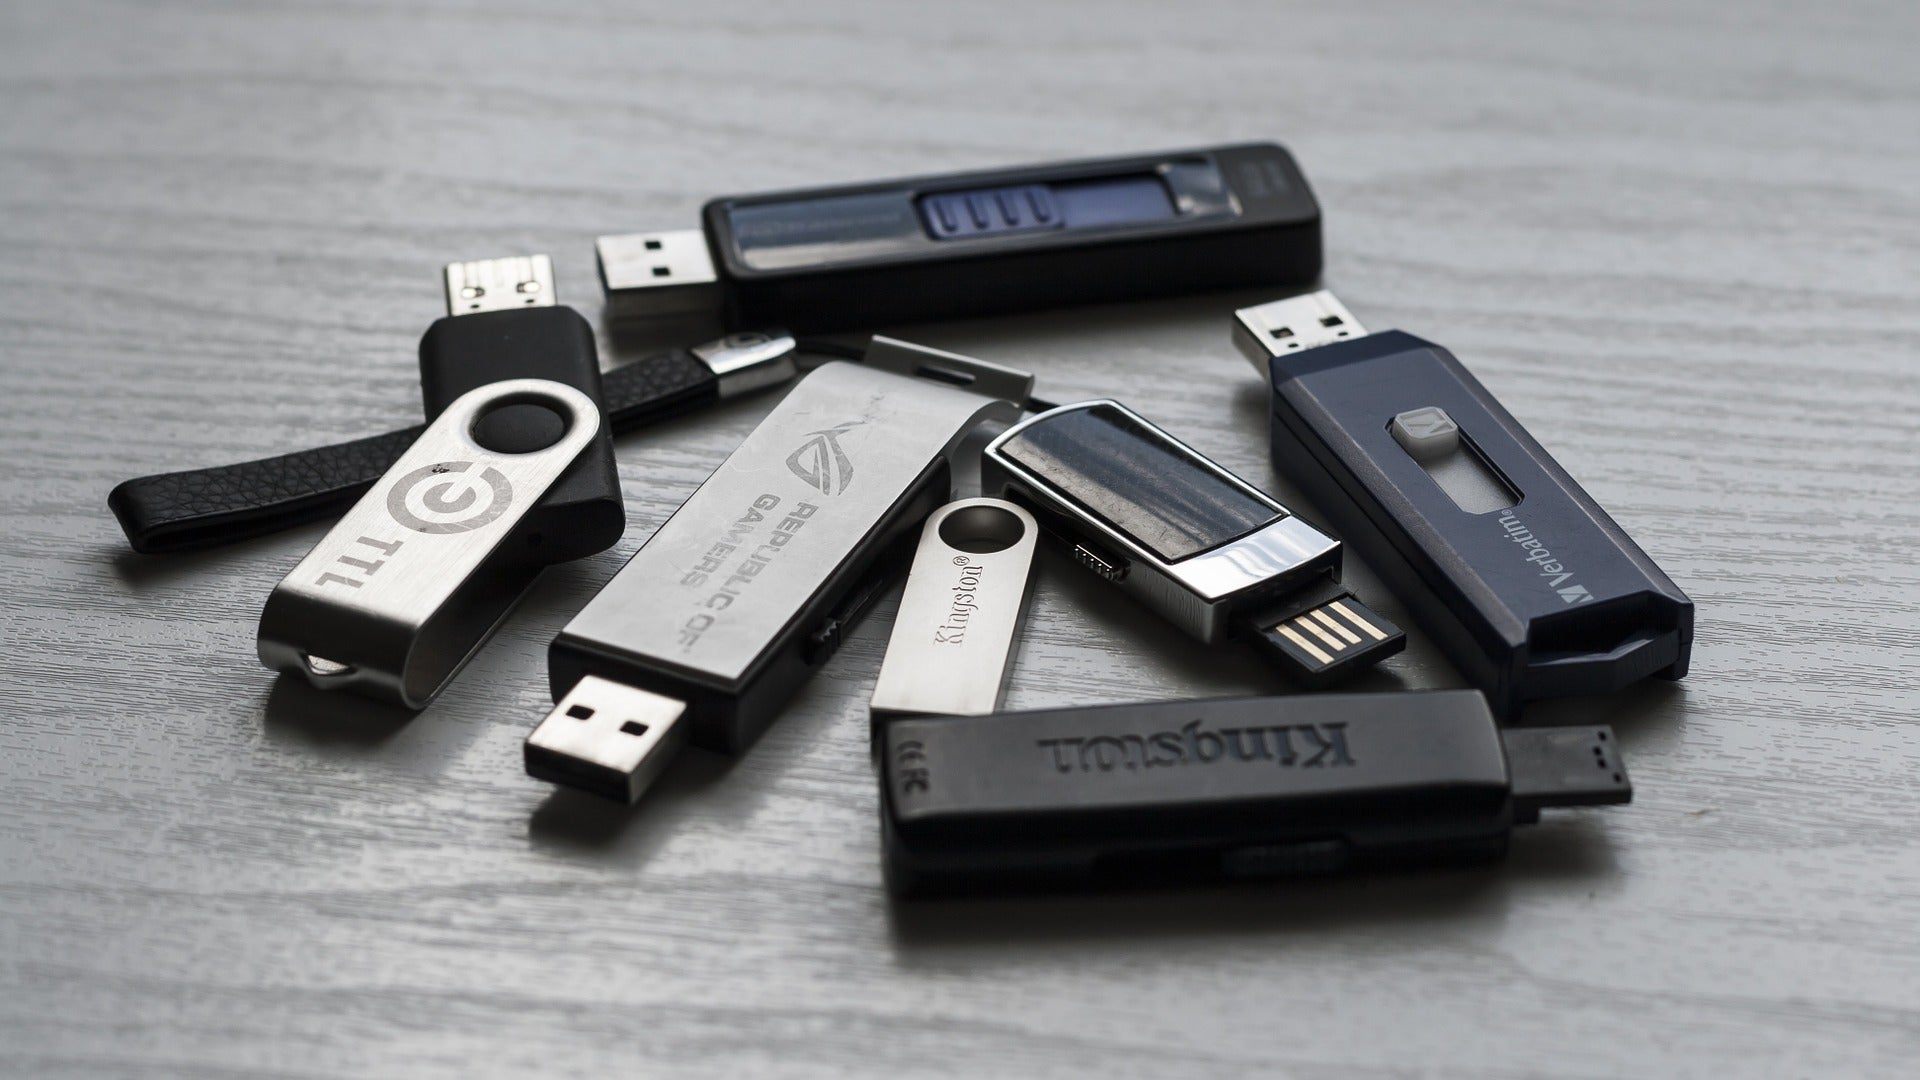 Windows Is Giving Up On Getting You To 'Safely Remove' USB Drives